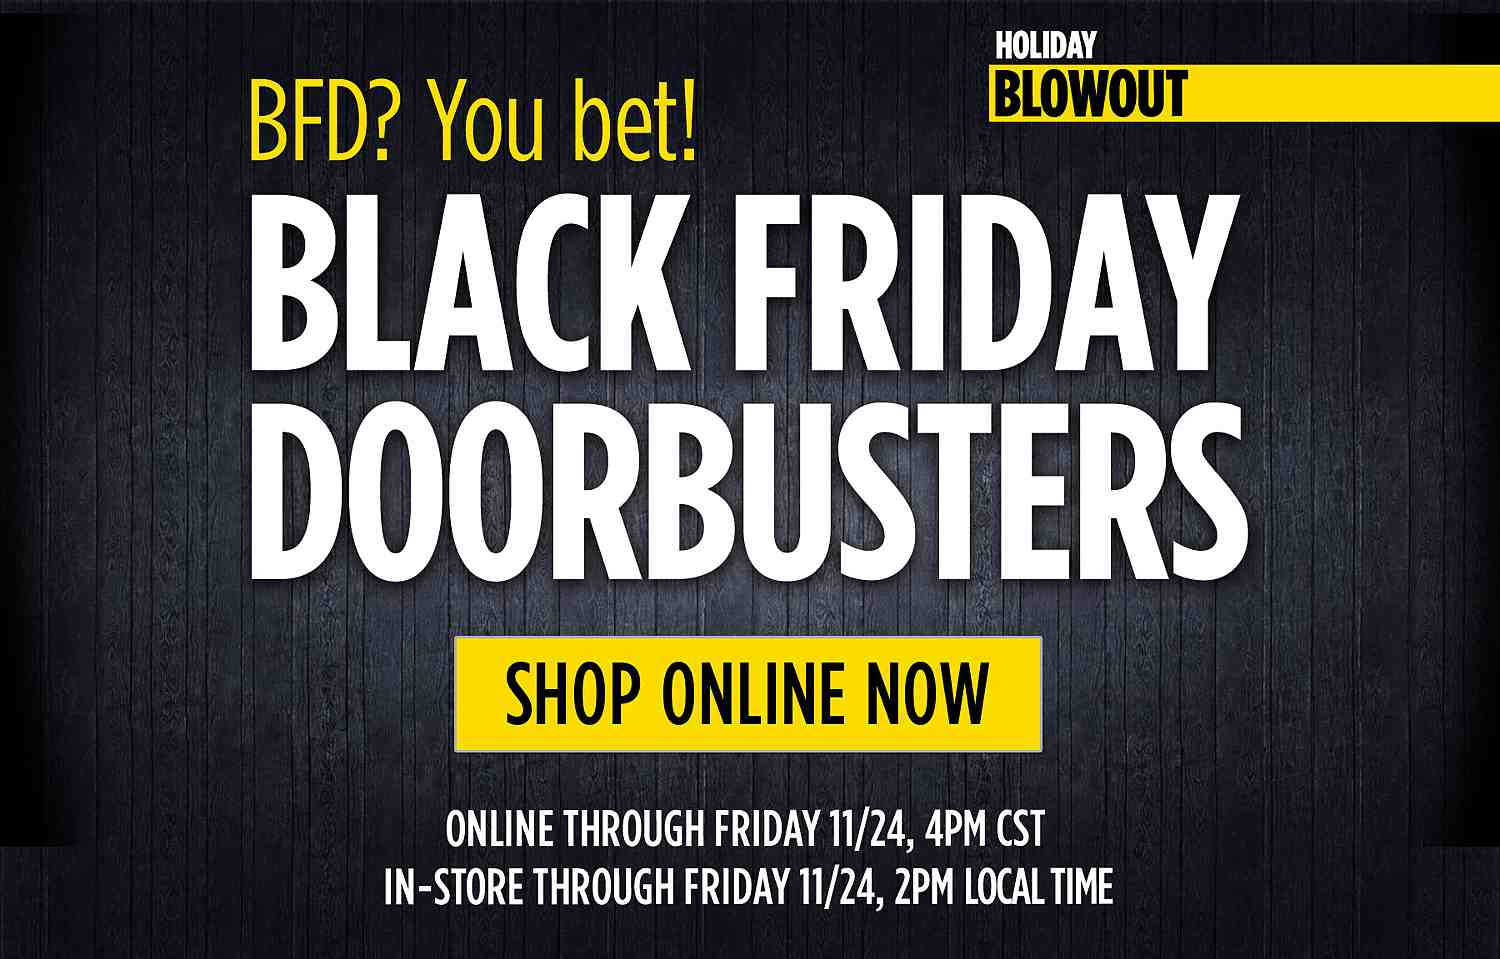 BFD? You Bet! Black Friday Doorbusters Shop Now! Black Friday Doorbusters Online NOW - Online through Friday 4pm CST In-store through Friday 2pm local time